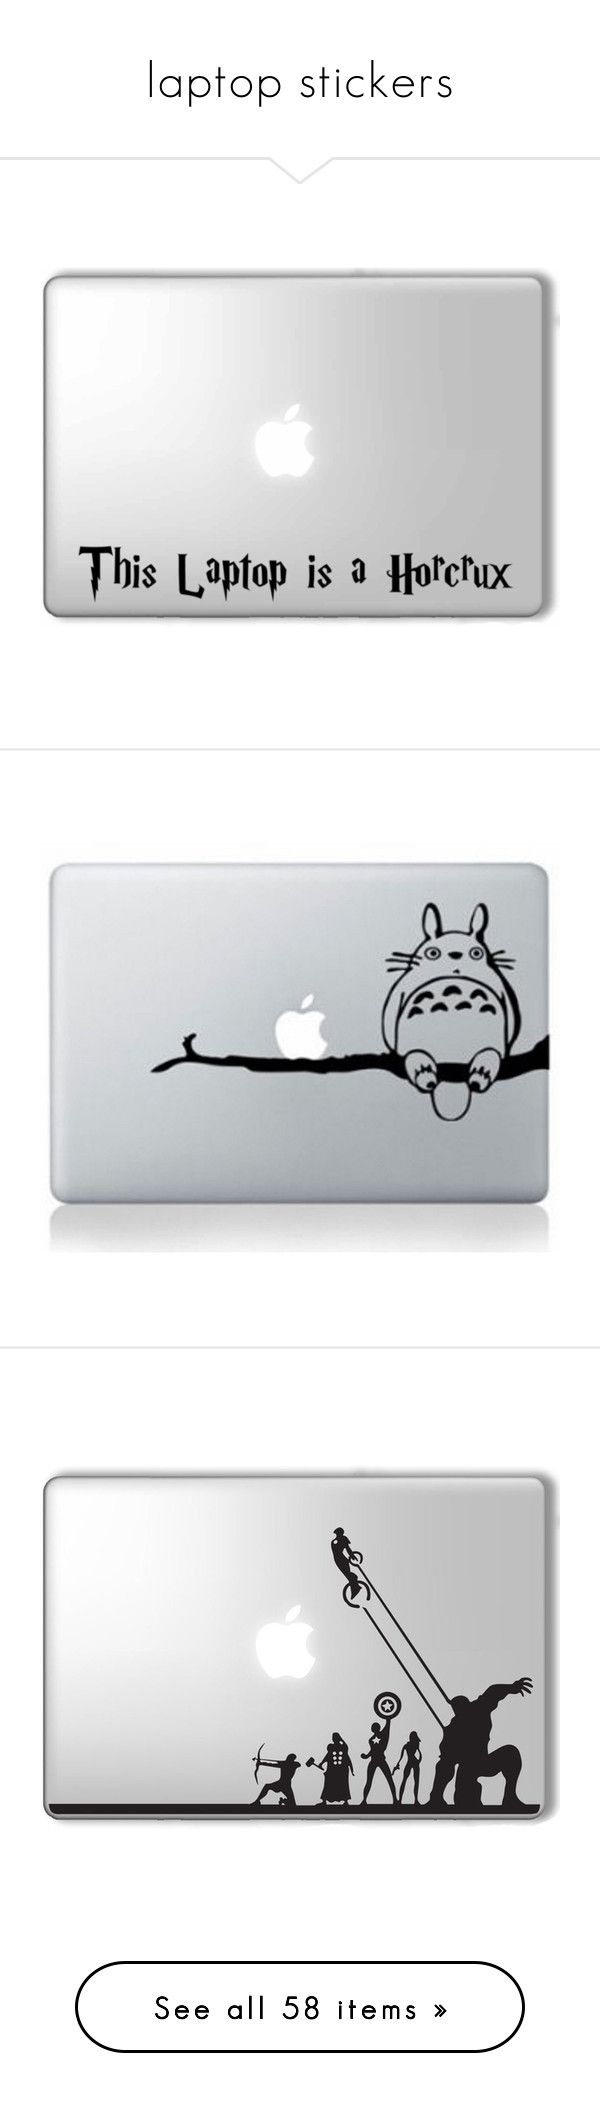 Unique Mac Stickers Ideas On Pinterest Mac Laptop Stickers - How to make laptop decals at home